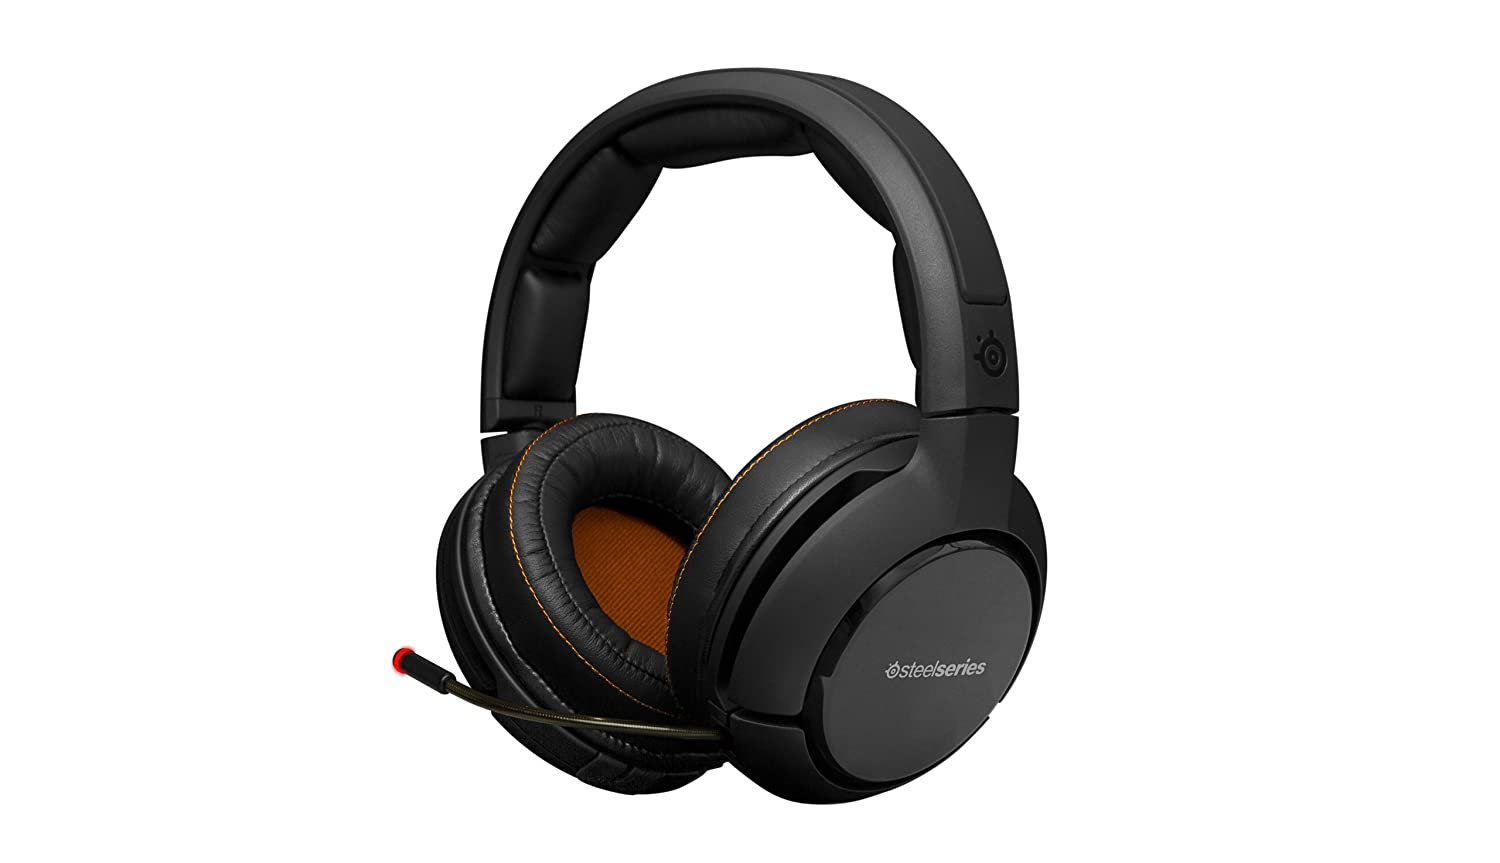 STEELSERIES H WIRELESS DRIVERS FOR WINDOWS XP